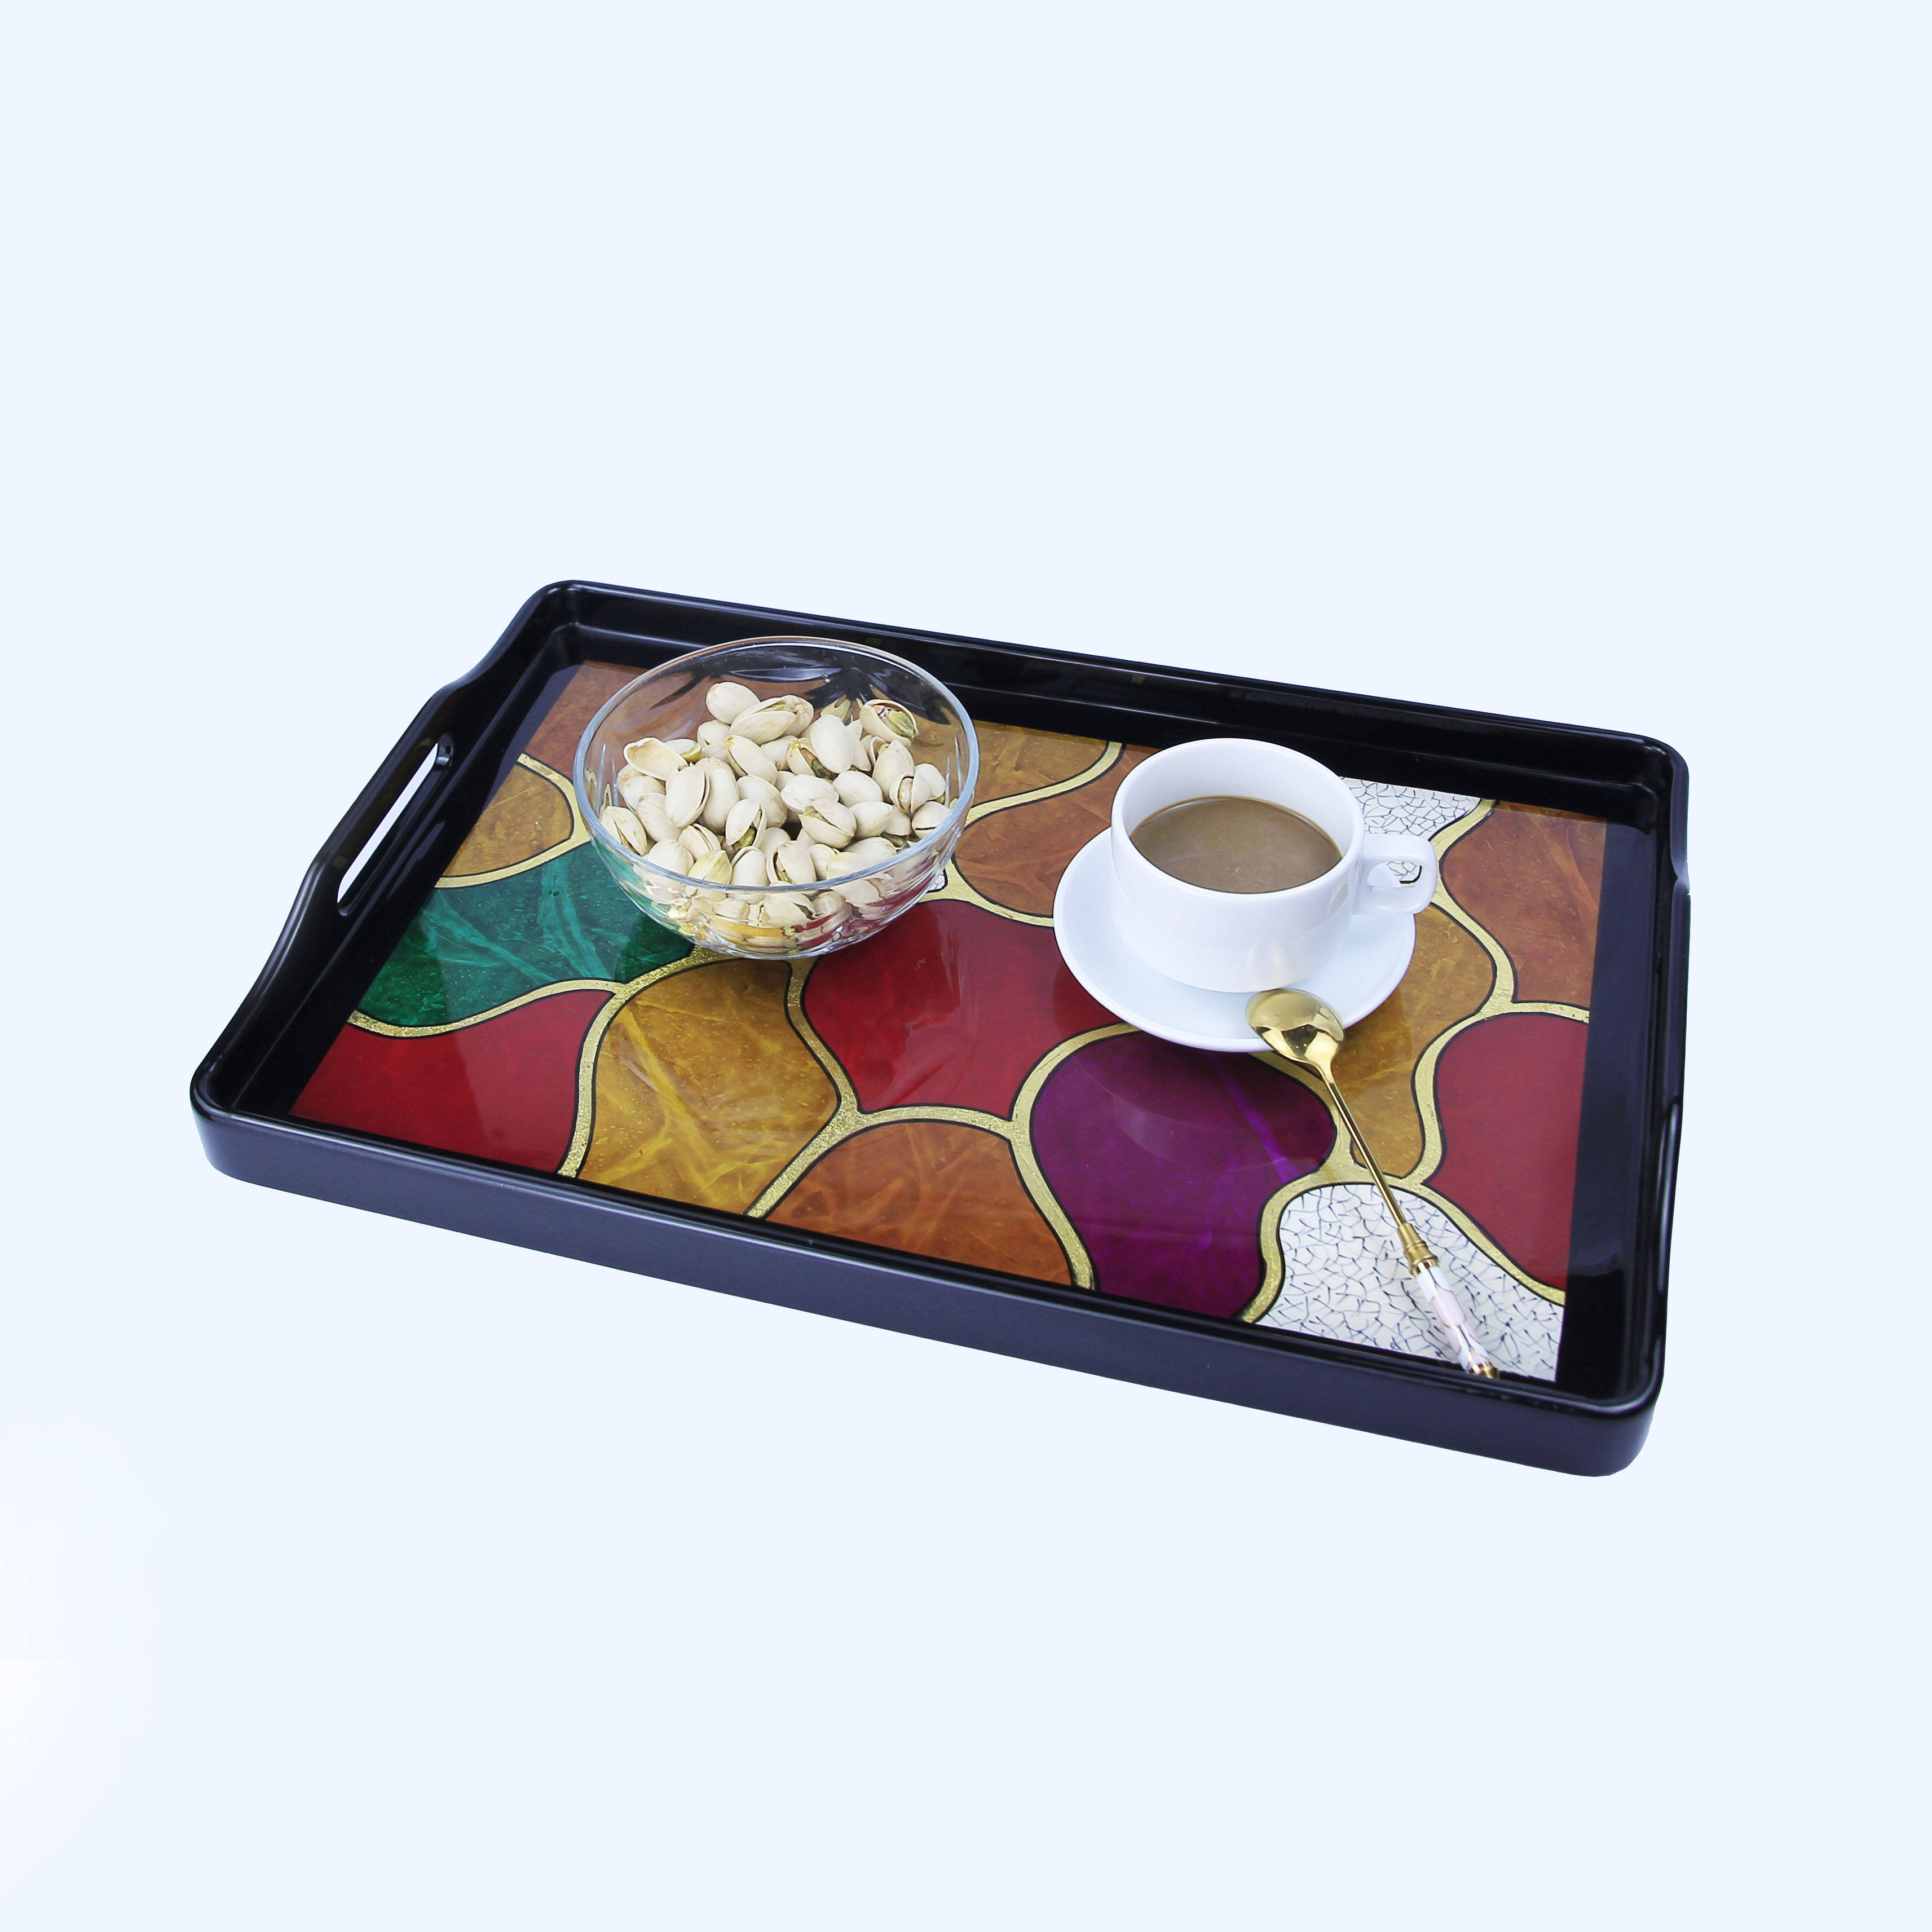 Viet Nam Hot Sale In Bulk Handmade Premium Quality Rock Design Painted Gold Leaf Home Decoration Wooden Lacquer Serving Tray